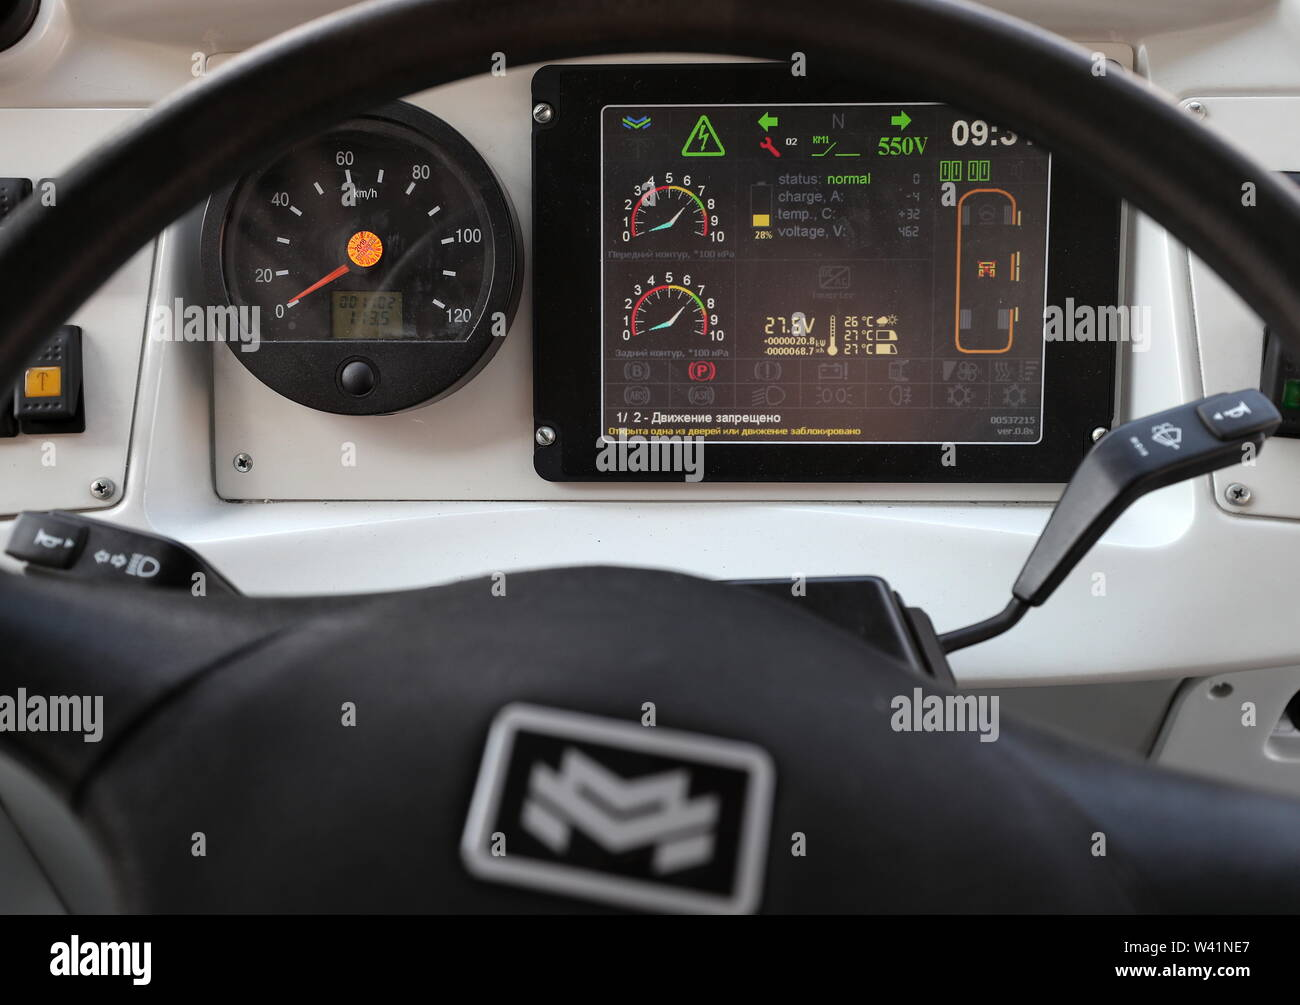 Yekaterinburg, Russia. 19th July, 2019. YEKATERINBURG, RUSSIA - JULY 19, 2019: The dashboard of a Belkommunmash electric bus ahead of a test run along Trolleybus Route 1, from Shchorsa Street to a railway station. The bus, manufactured by Belarus' Belkommunmash Company, was displayed at the 2019 Innoprom exhibition. Donat Sorokin/TASS Credit: ITAR-TASS News Agency/Alamy Live News - Stock Image